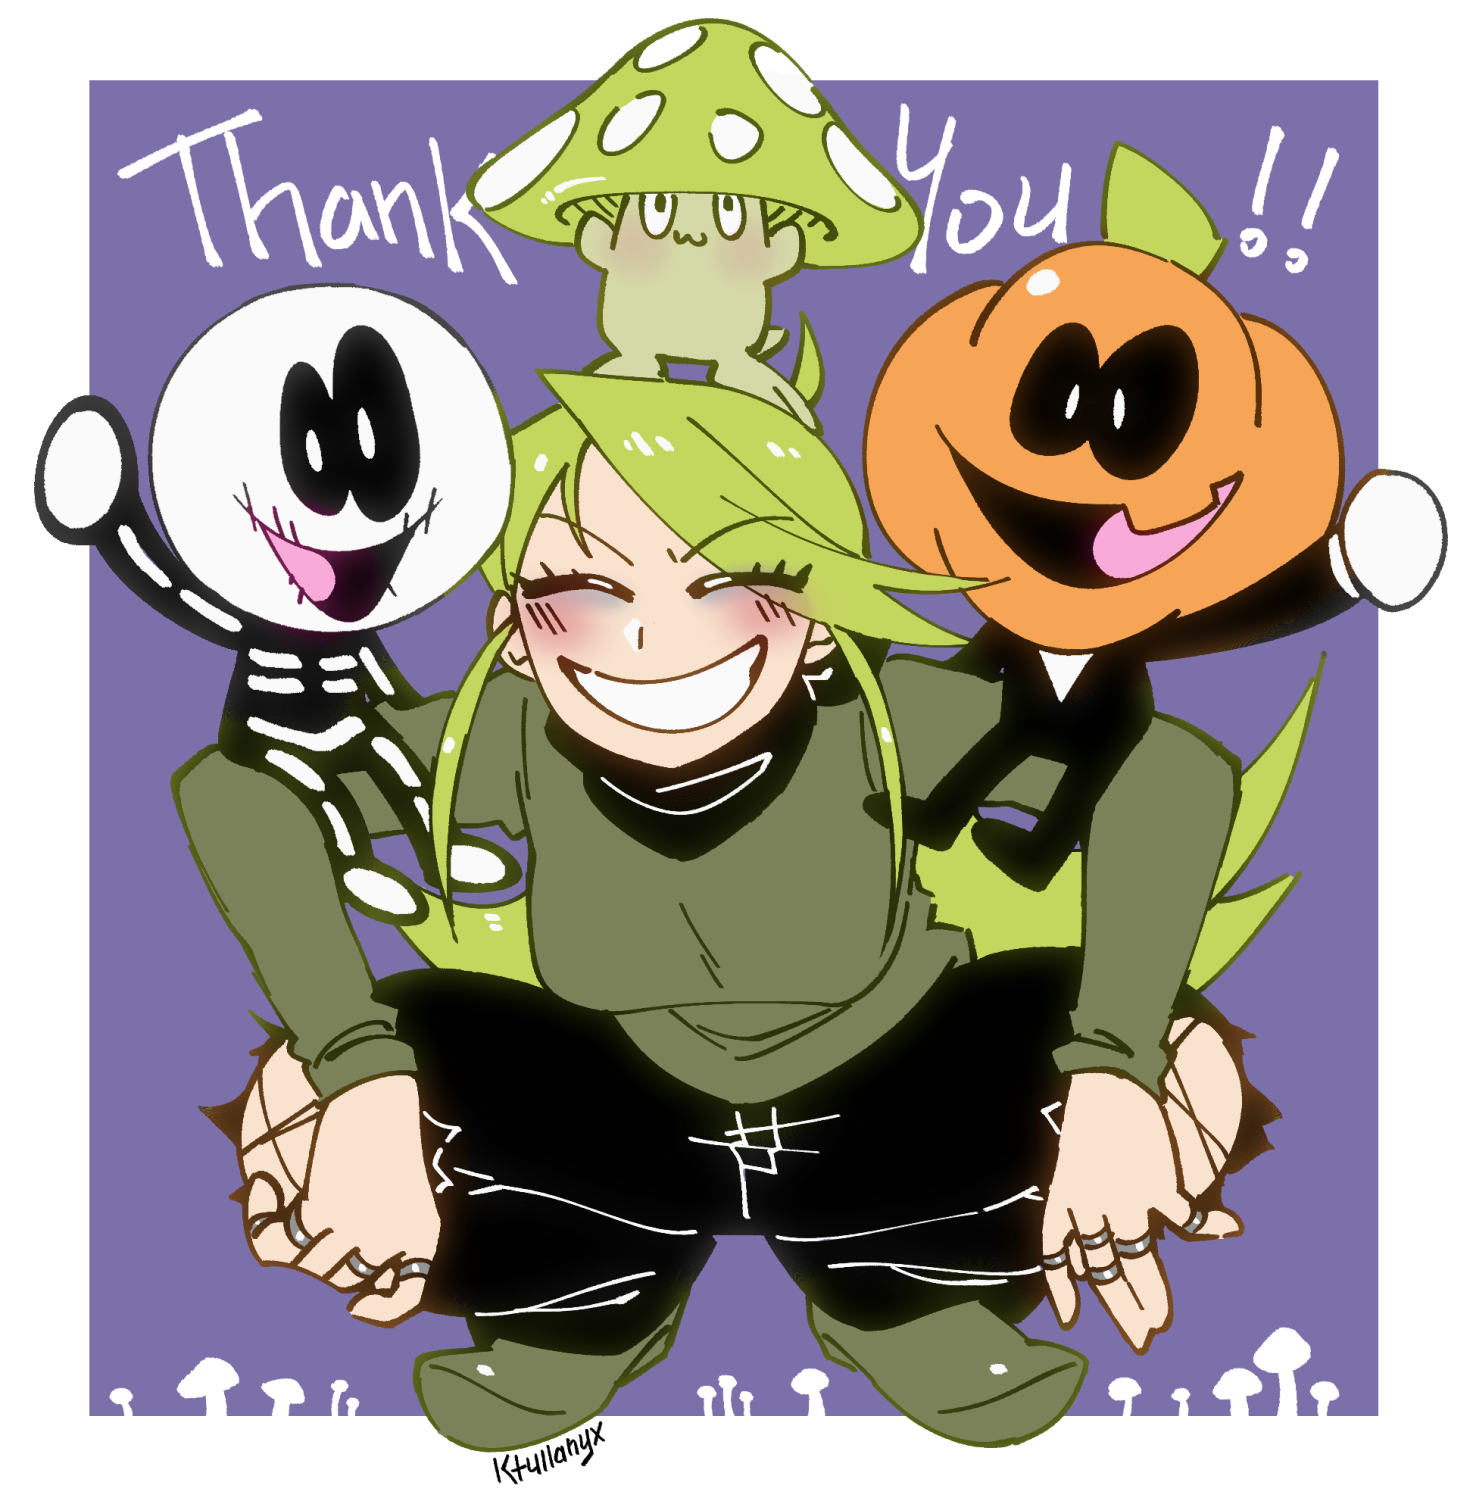 Spooky Thank You